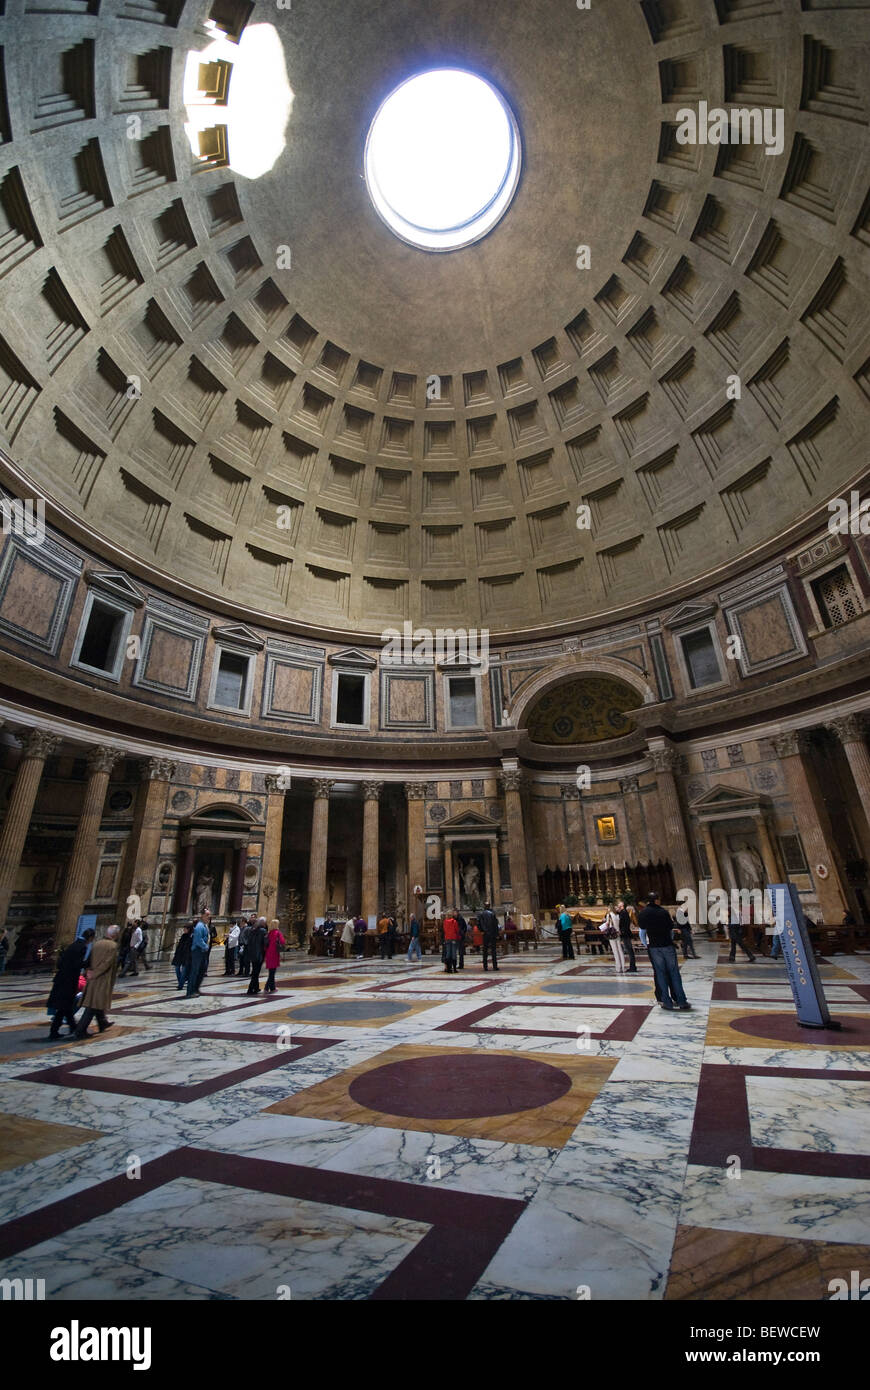 Pantheon Floor Pattern : Interior of the pantheon dome wide angle shot stock photo